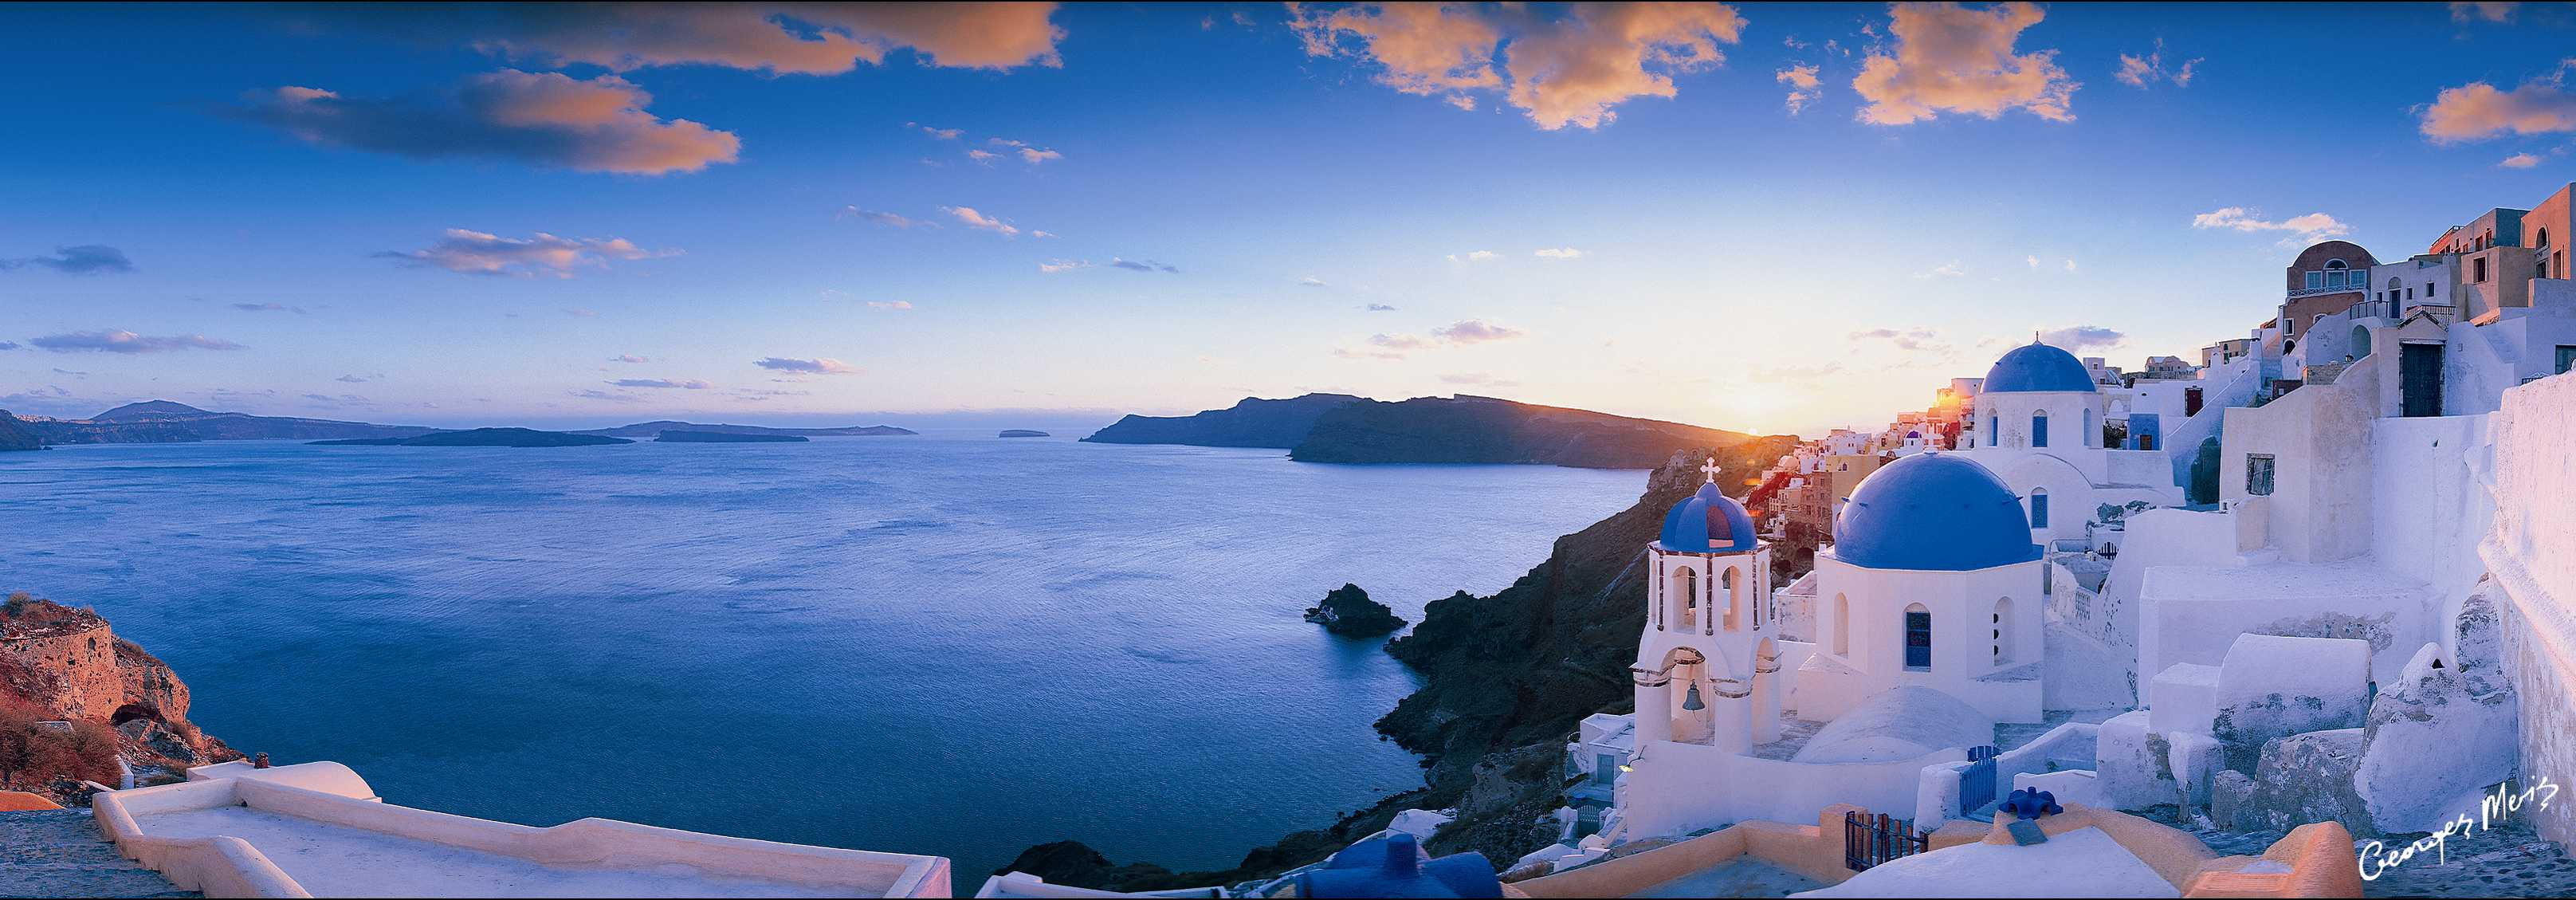 Beautiful Greece   Greece Photo 36337352 3232x1129